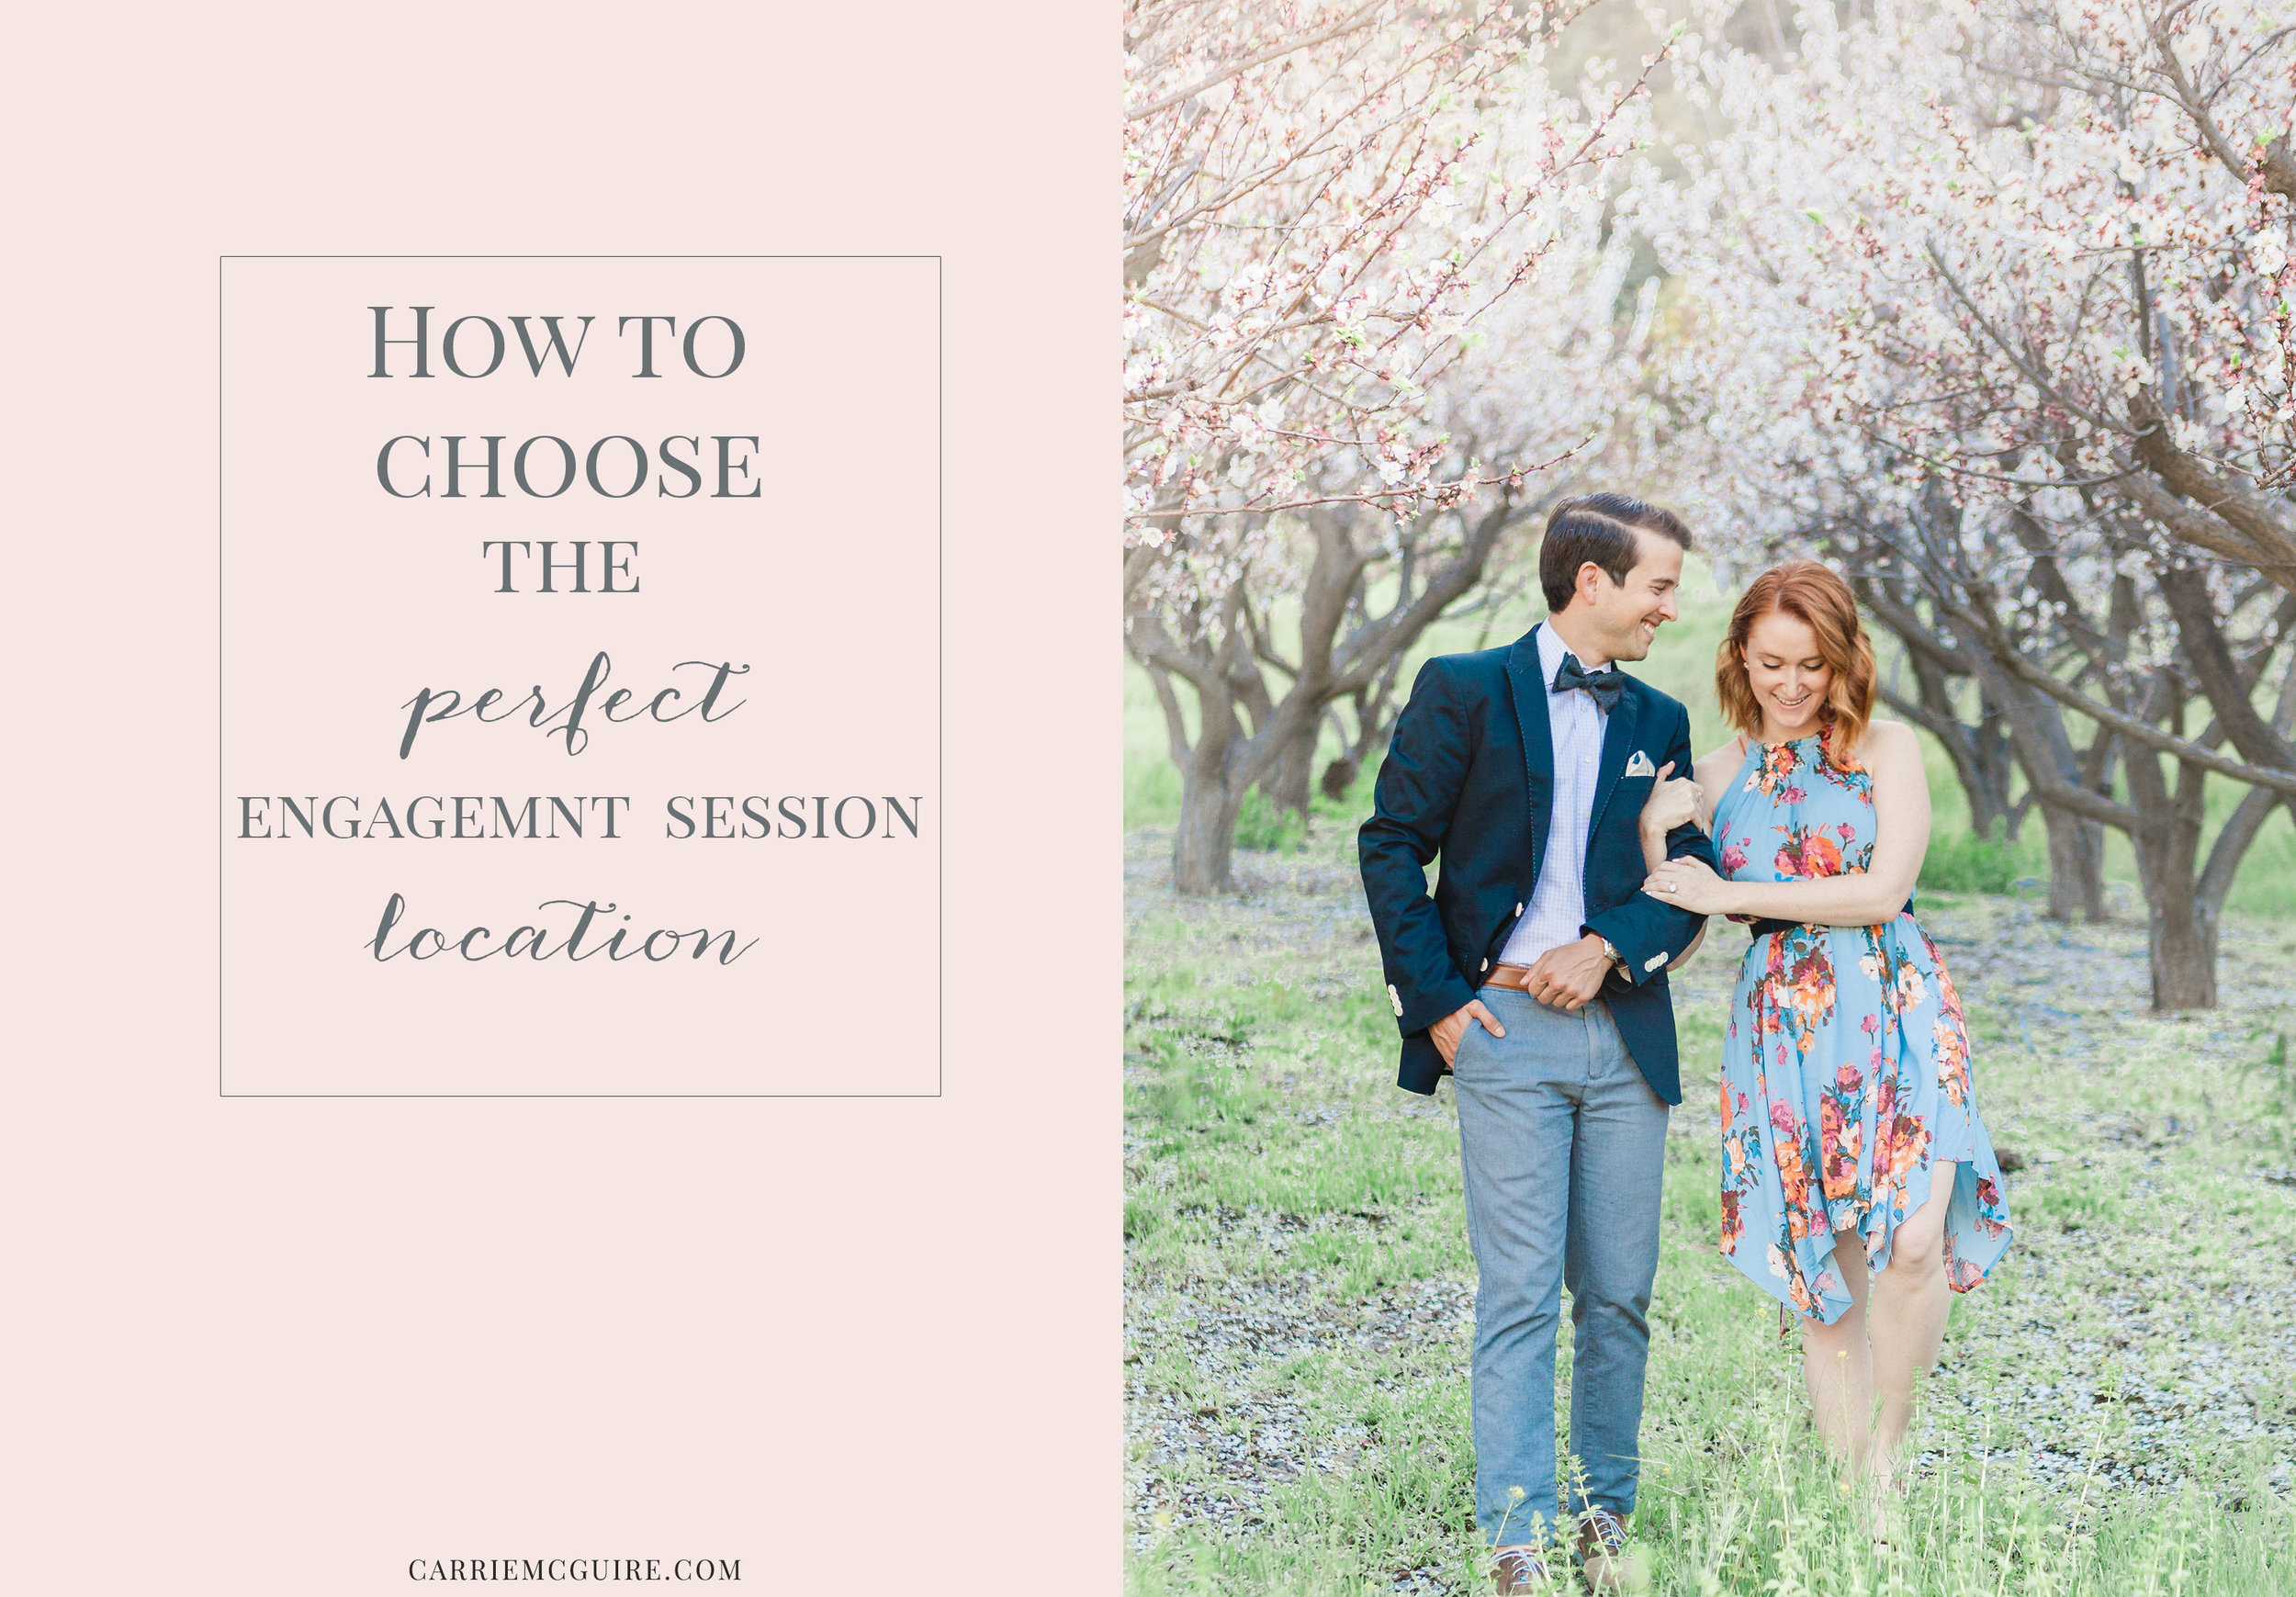 How to choose the perfect engagement session location